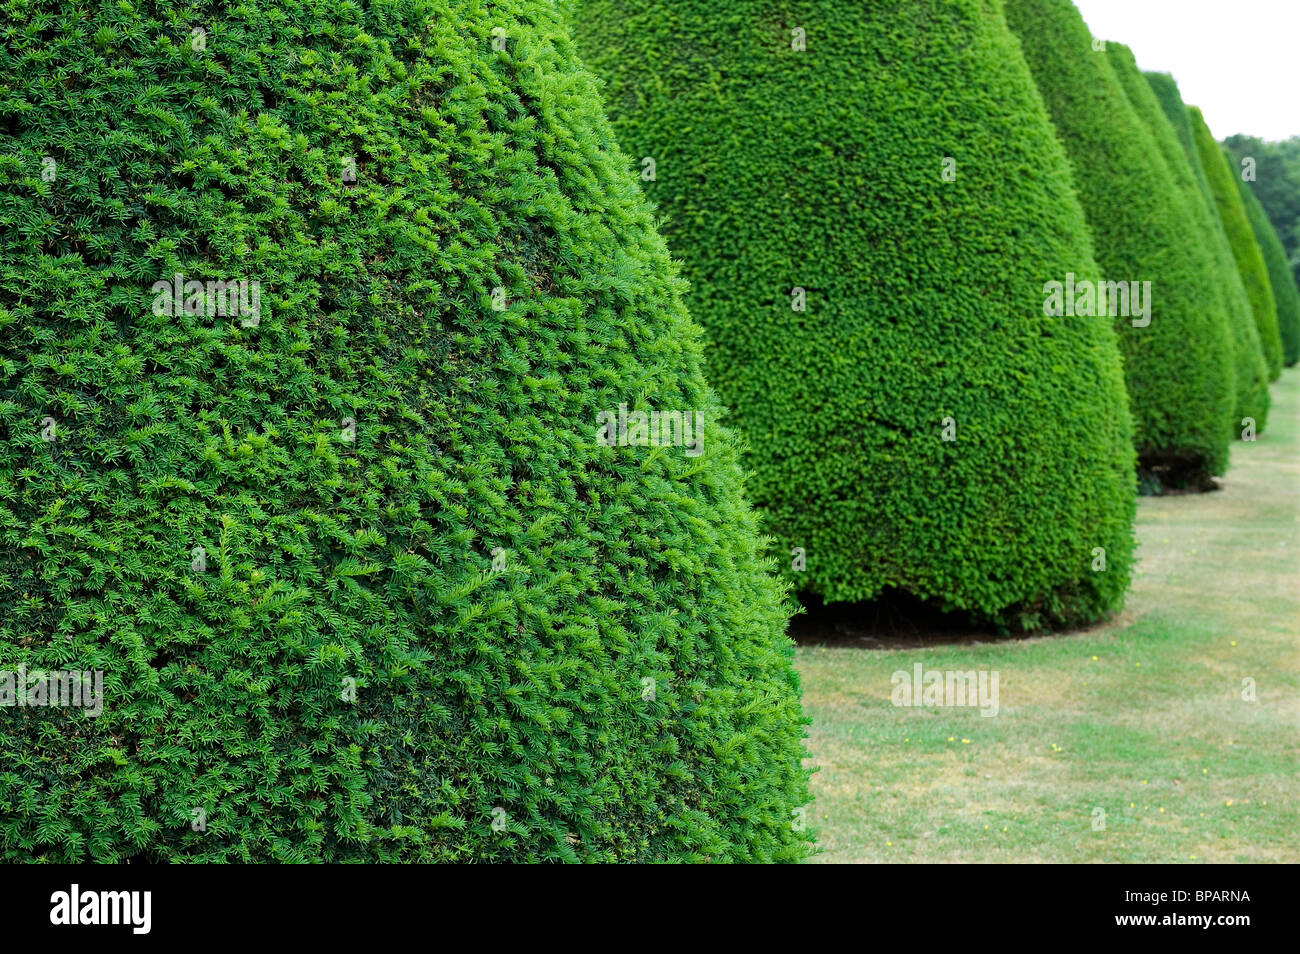 clipped conical shaped yew trees - Stock Image